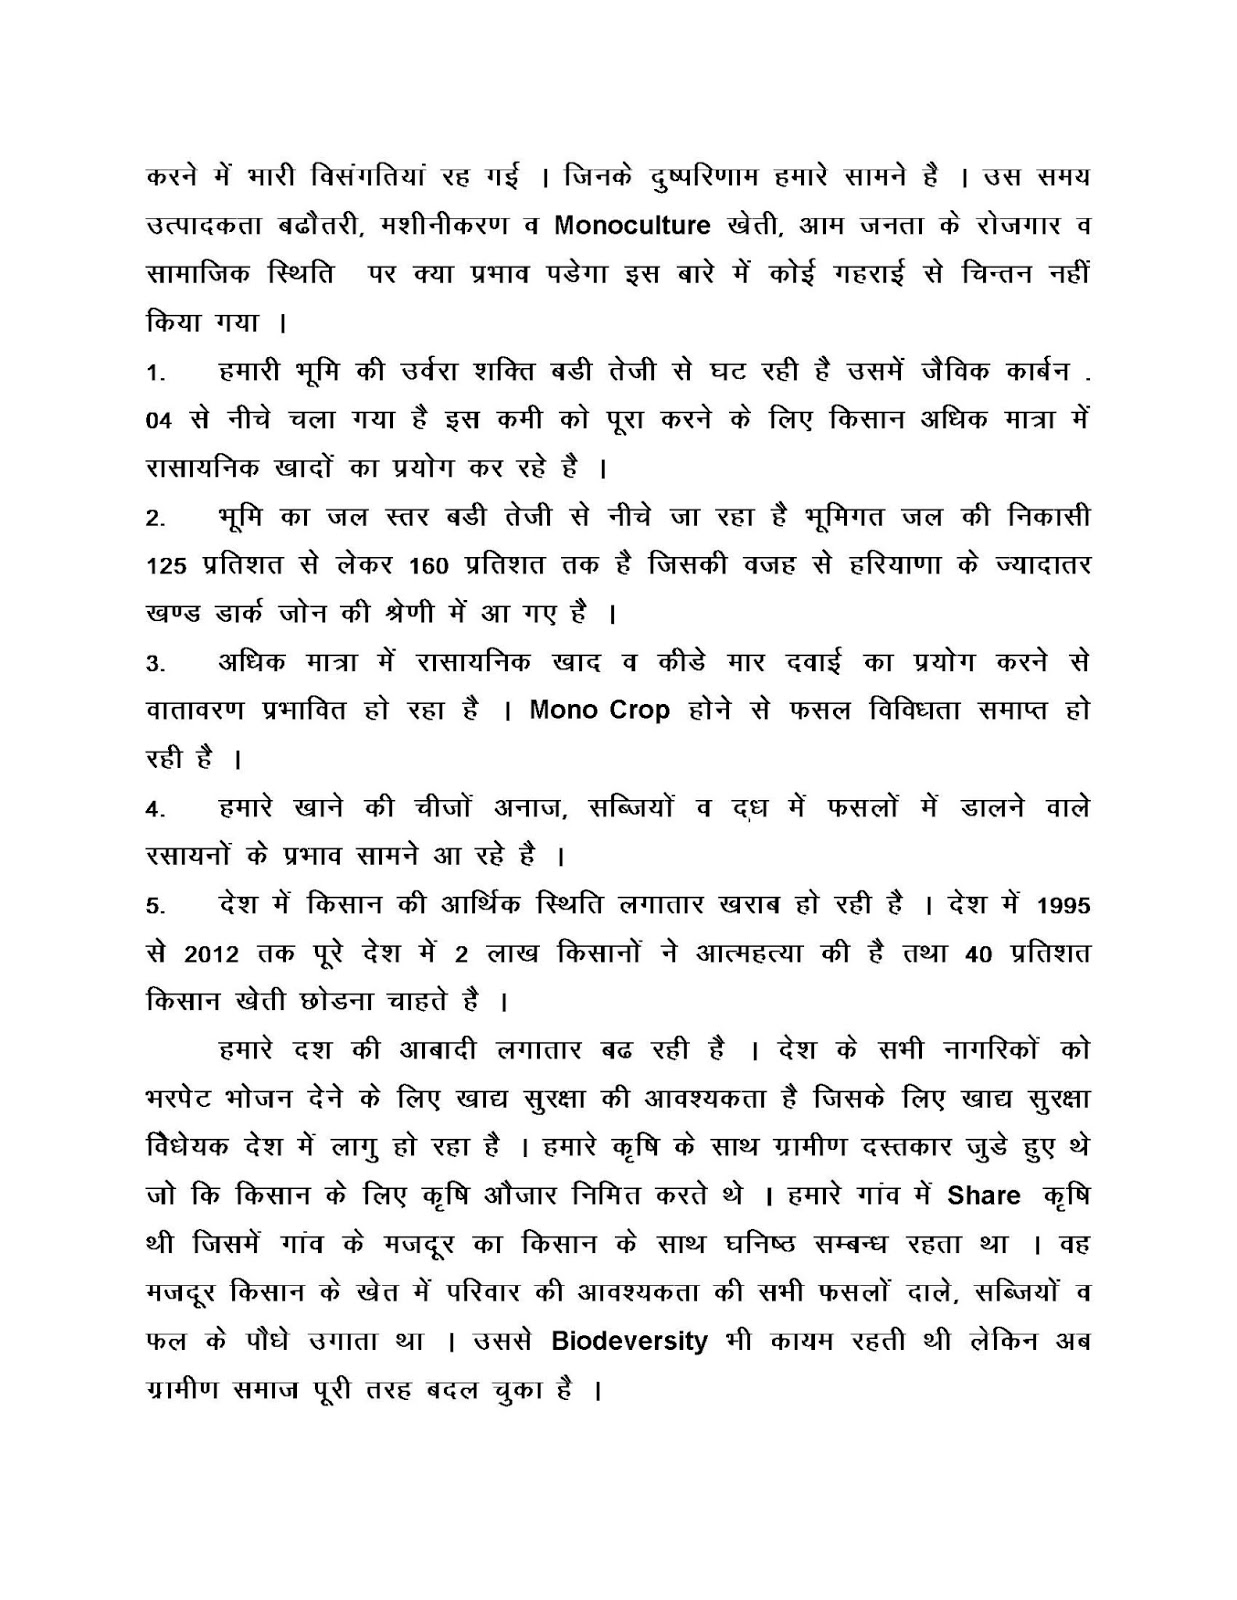 008 Essay Exampleworkdr Rajindersingh Page 2 On Electricity In Imposing Hindi Veto Power Youth Problem Language Full